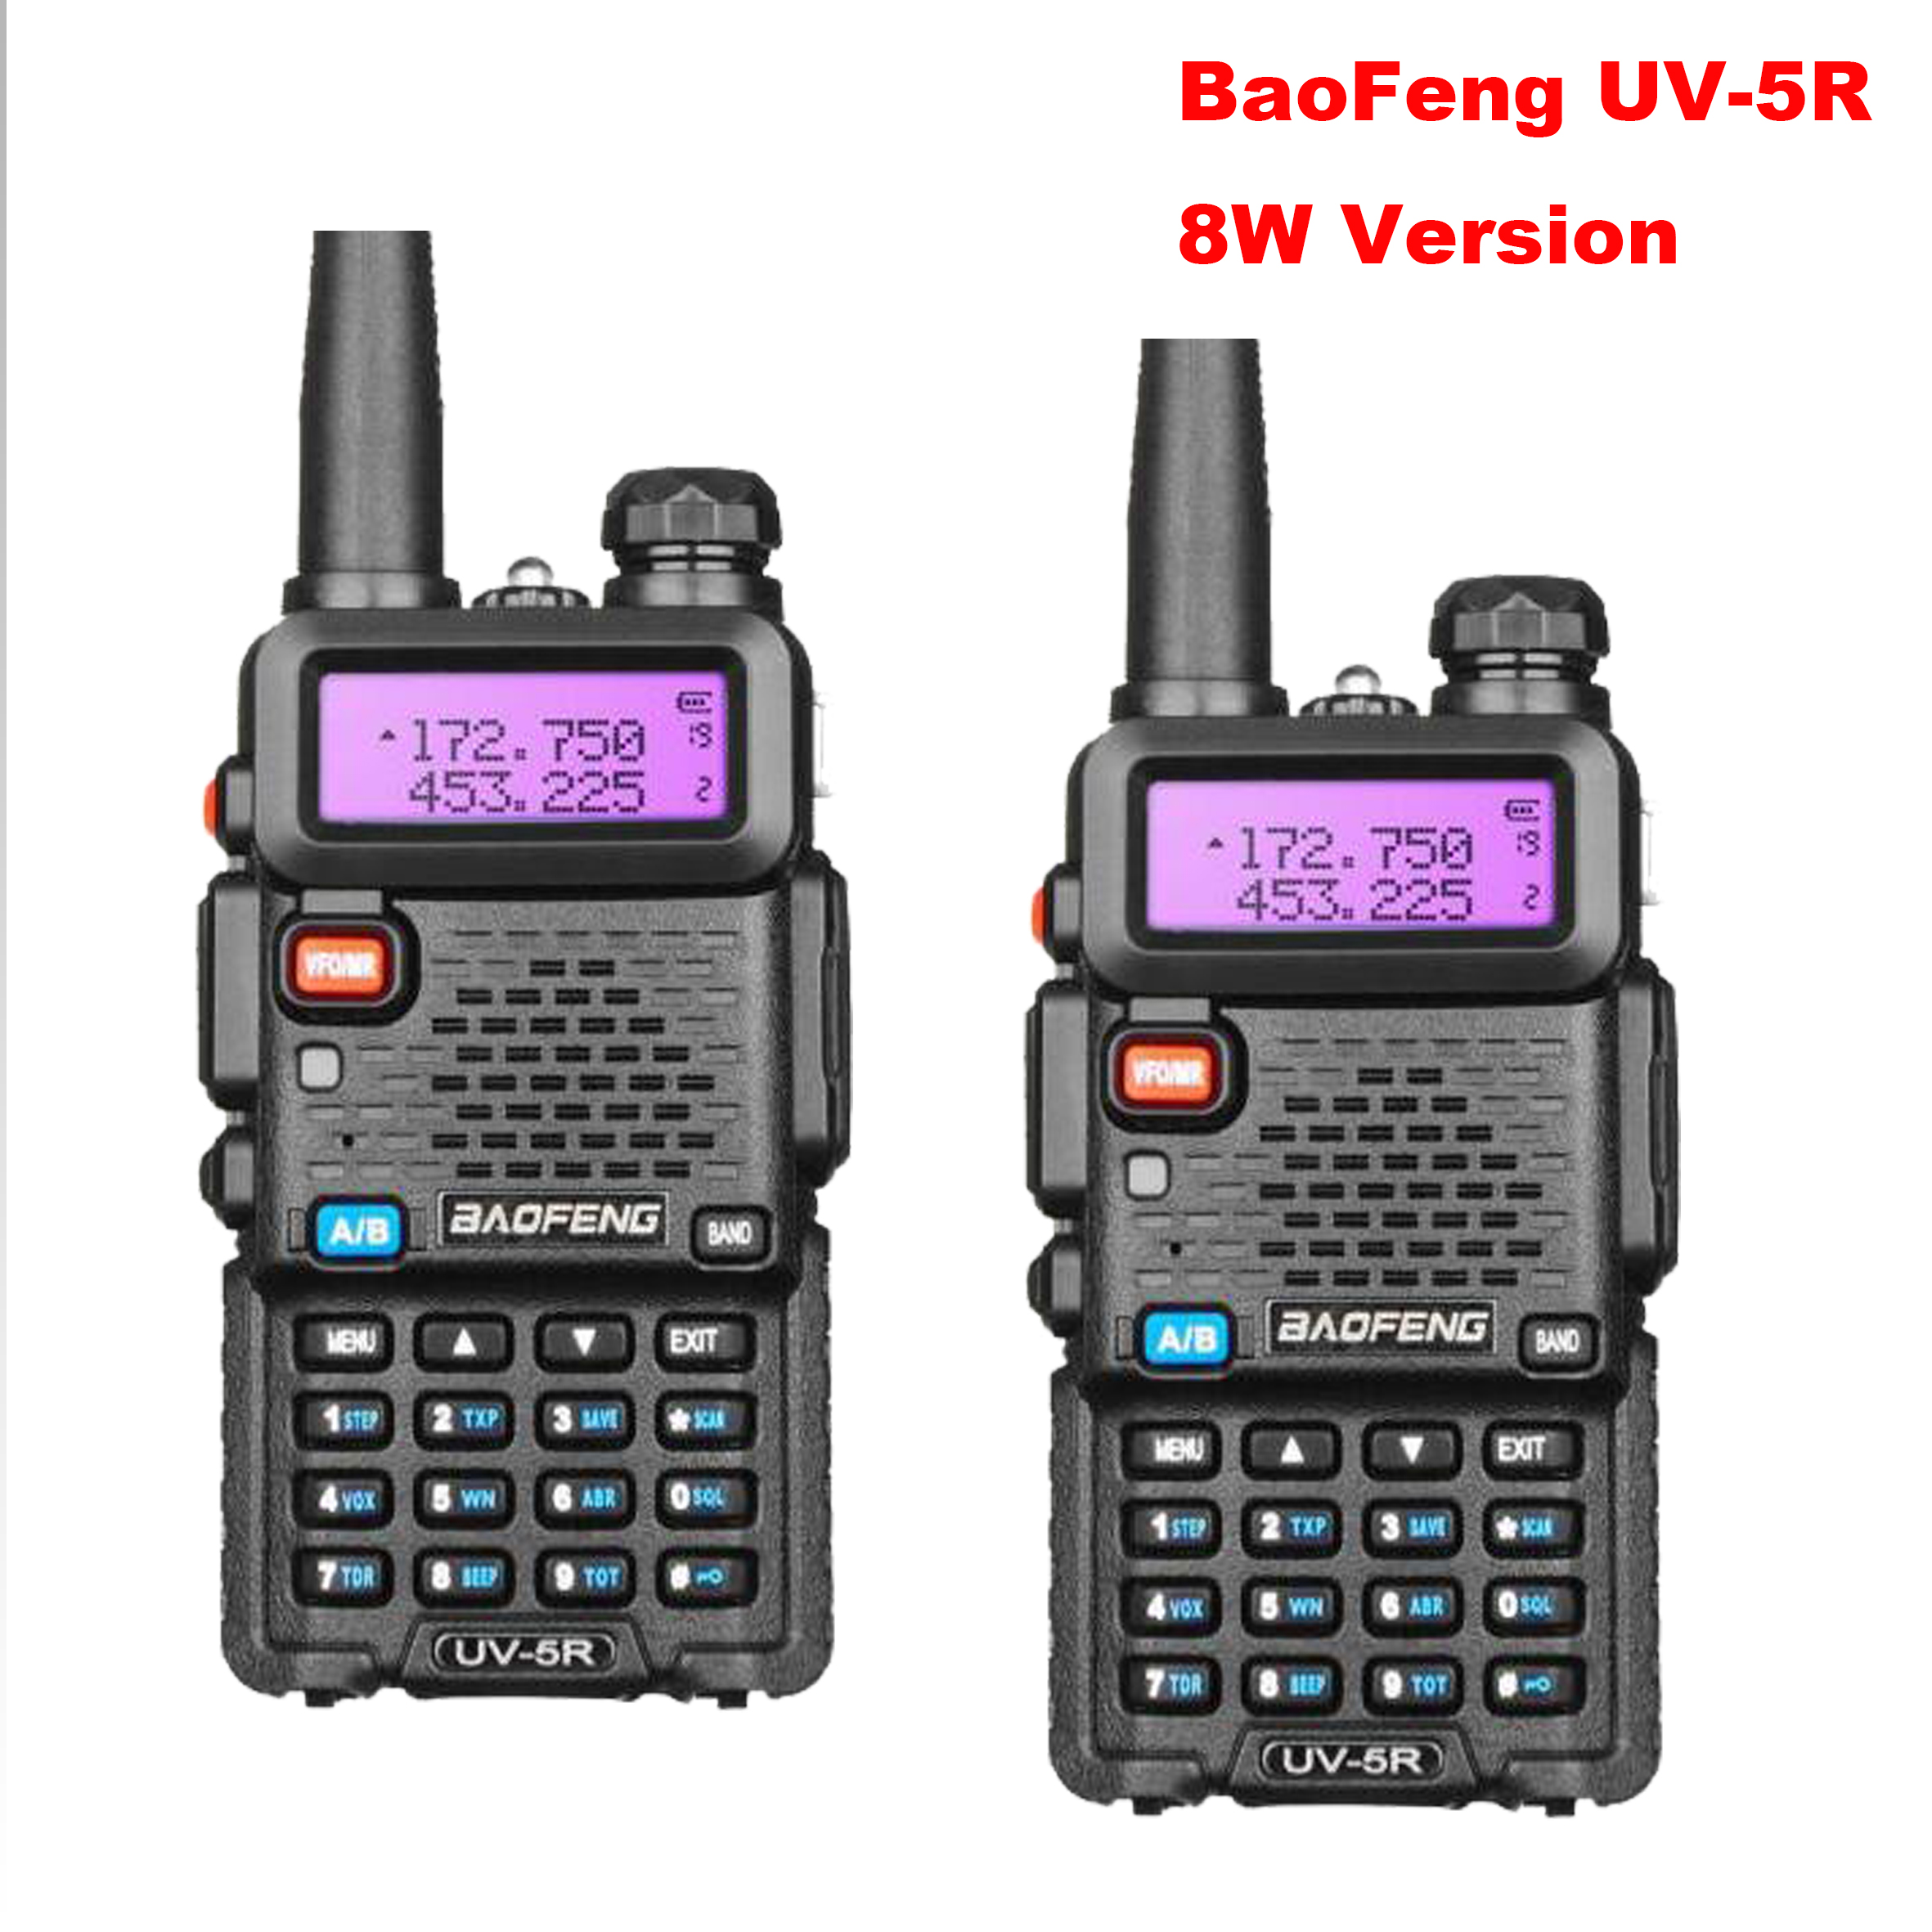 New Baofeng UV 5R 8W Walkie Talkie Upgrade 5R High Power Portable Two Way Radio Dual